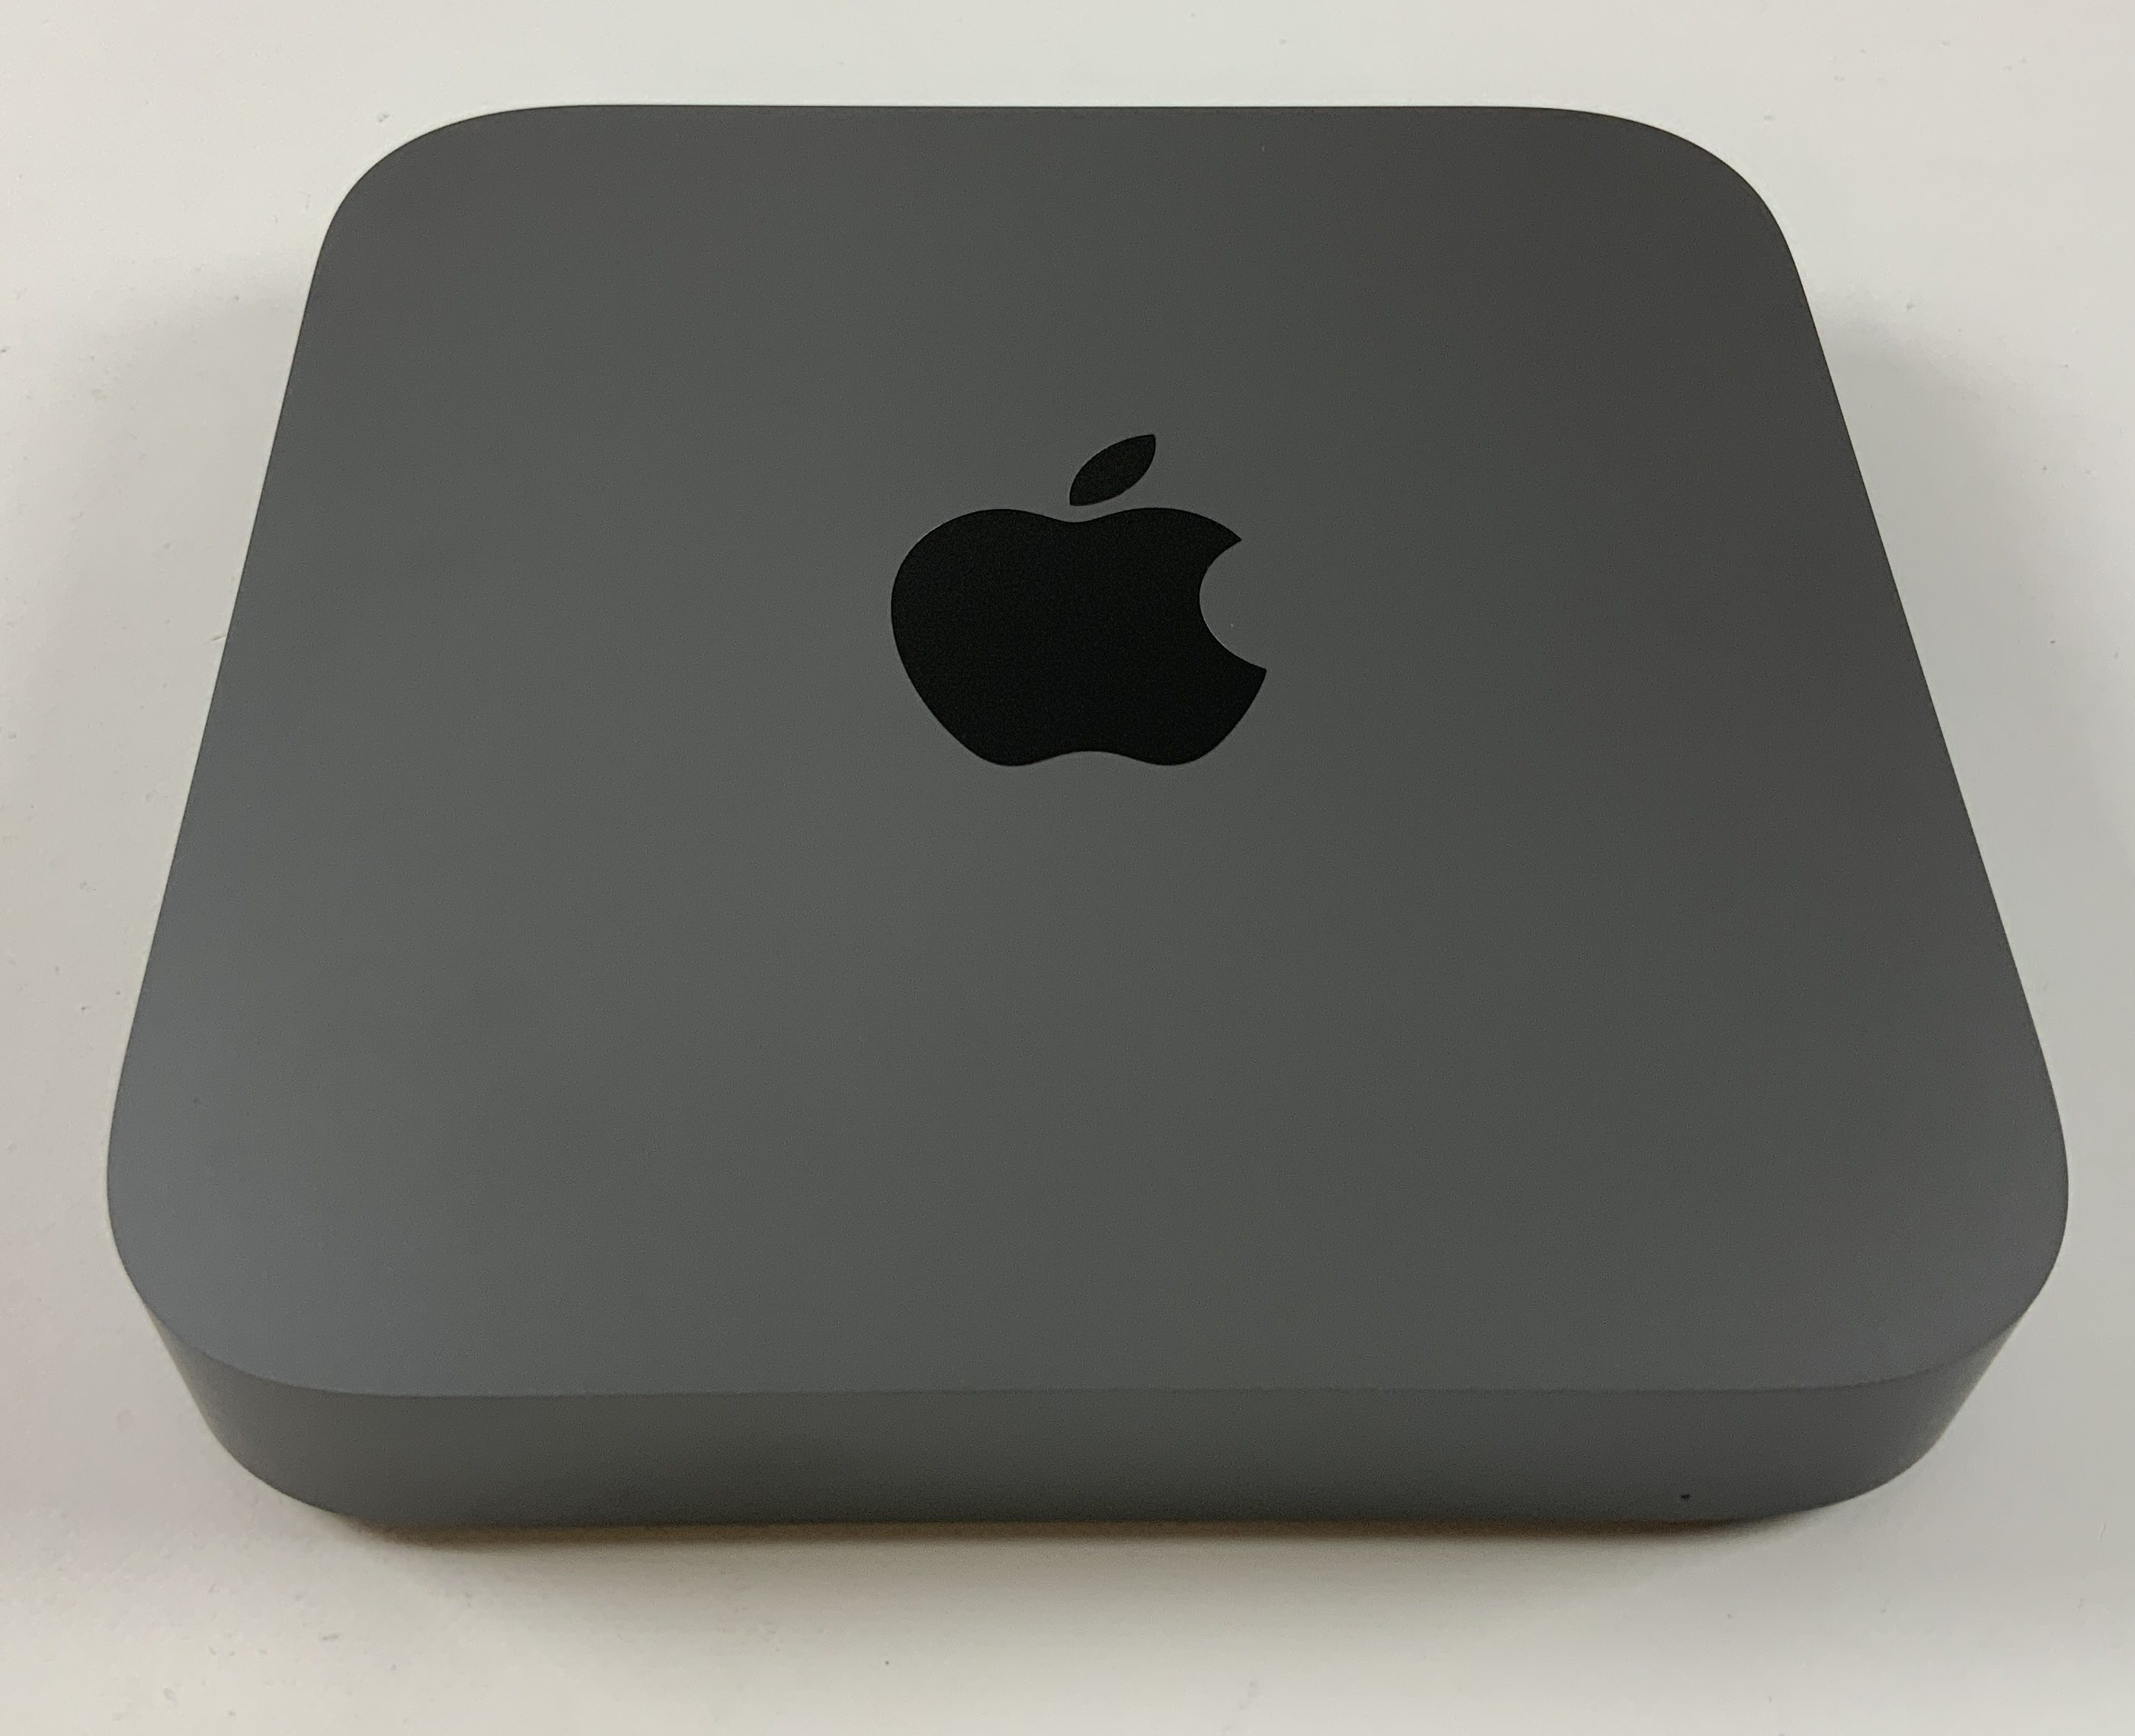 Mac Mini Late 2018 (Intel Quad-Core i3 3.6 GHz 64 GB RAM 128 GB SSD), Intel Quad-Core i3 3.6 GHz, 64 GB RAM, 128 GB SSD, Kuva 1